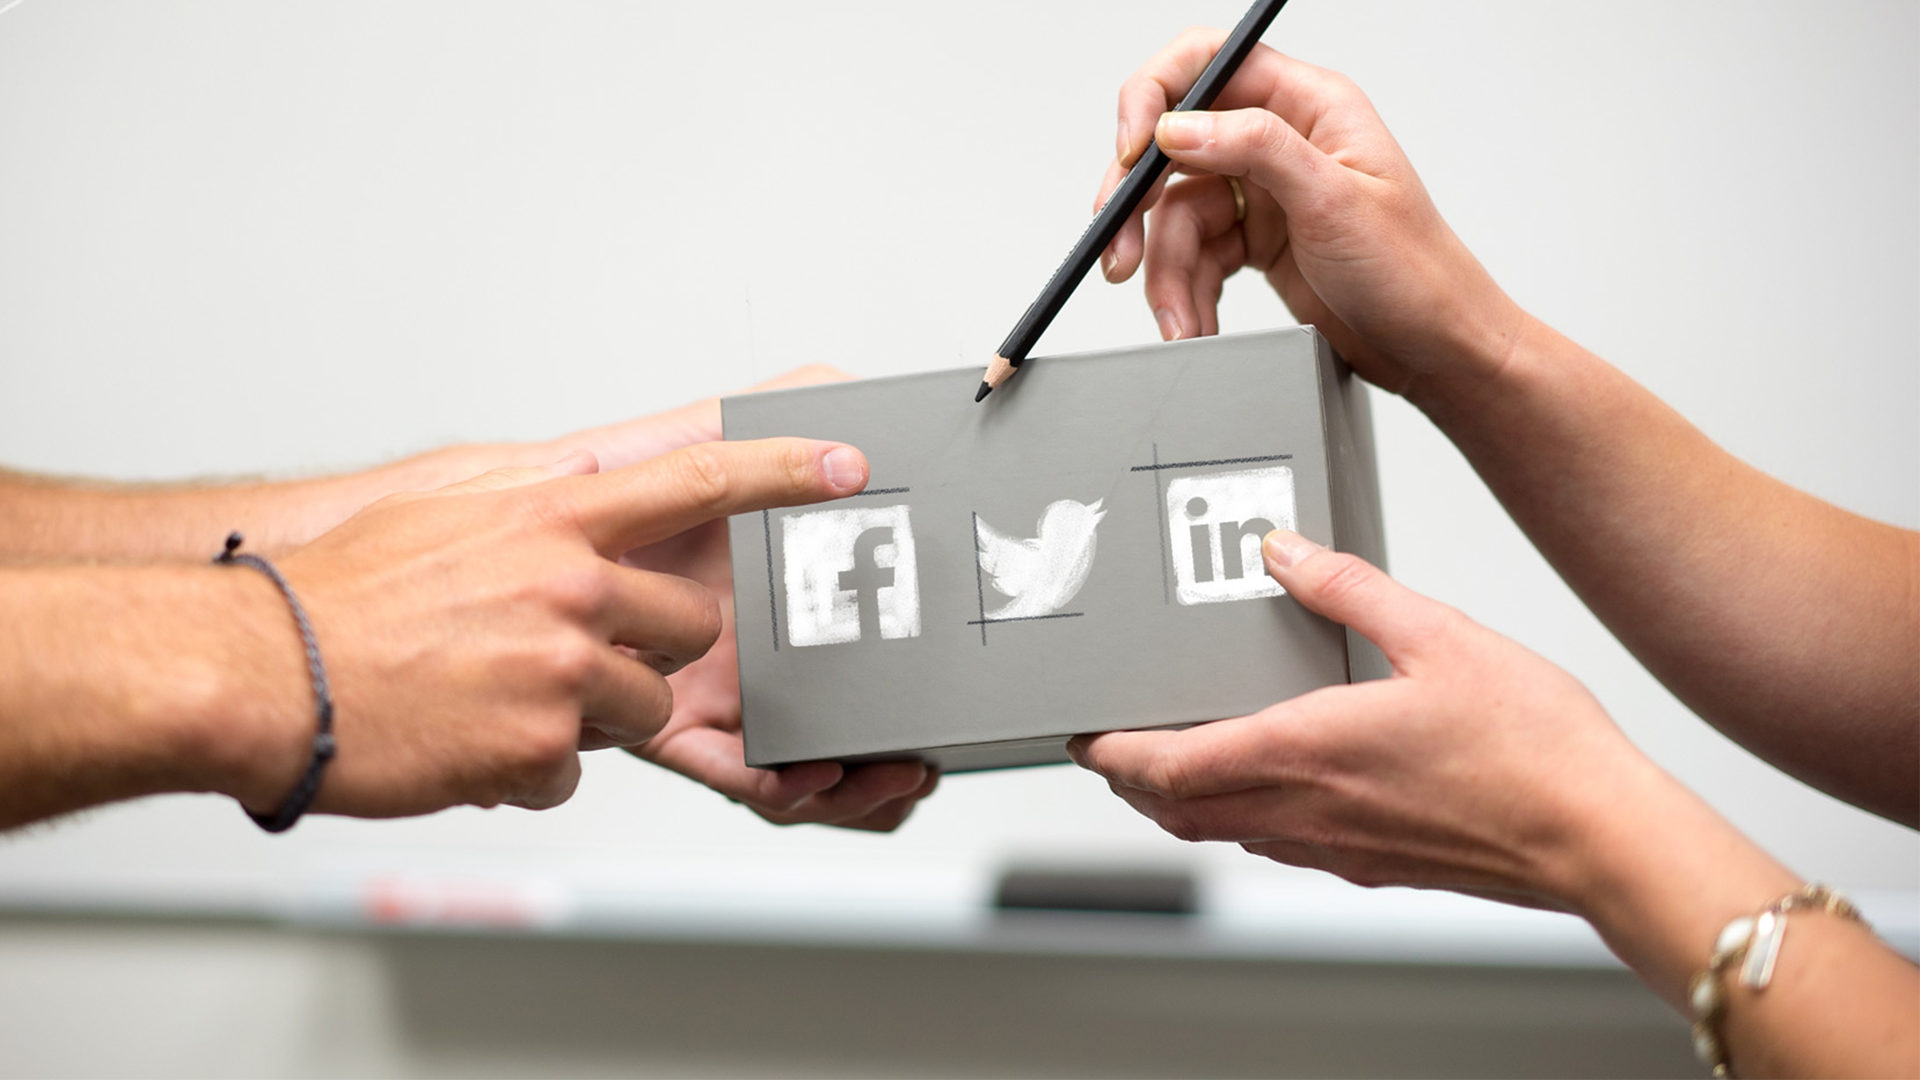 The Marketer's Holy Grail: How to Measure Social Media ROI